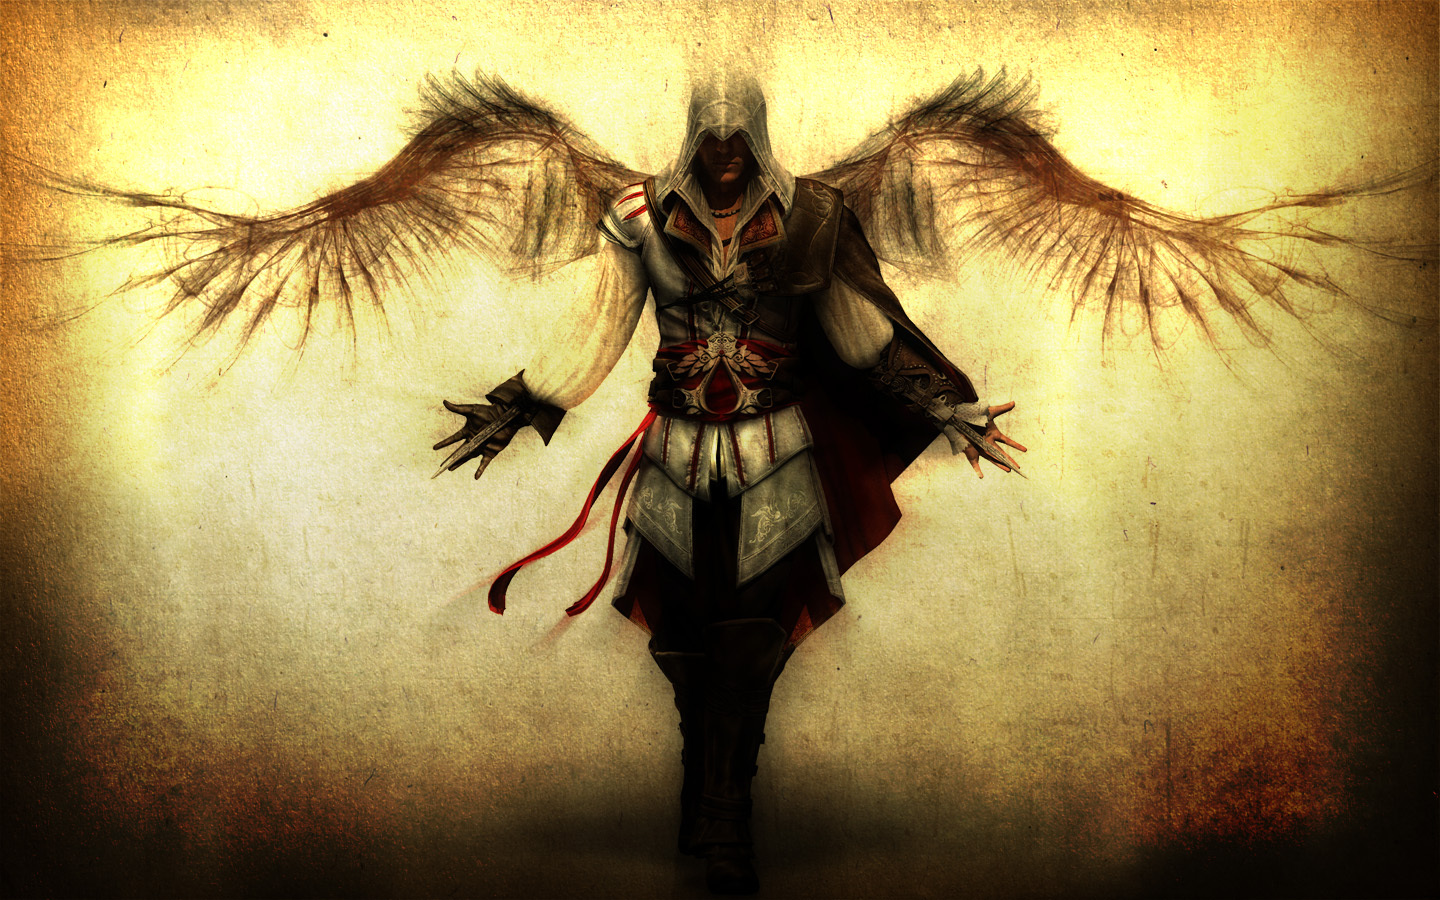 http://1.bp.blogspot.com/-UnyU9AsSmAM/UAOMLL-IiLI/AAAAAAAABA4/vNK31Em_-iw/s1600/assassins%2Bcreed%2Bac1%2Bac%2Bezio%2Bangel%2Bwallpaper%2Bbackground%2Bubisoft%2Baction.jpg